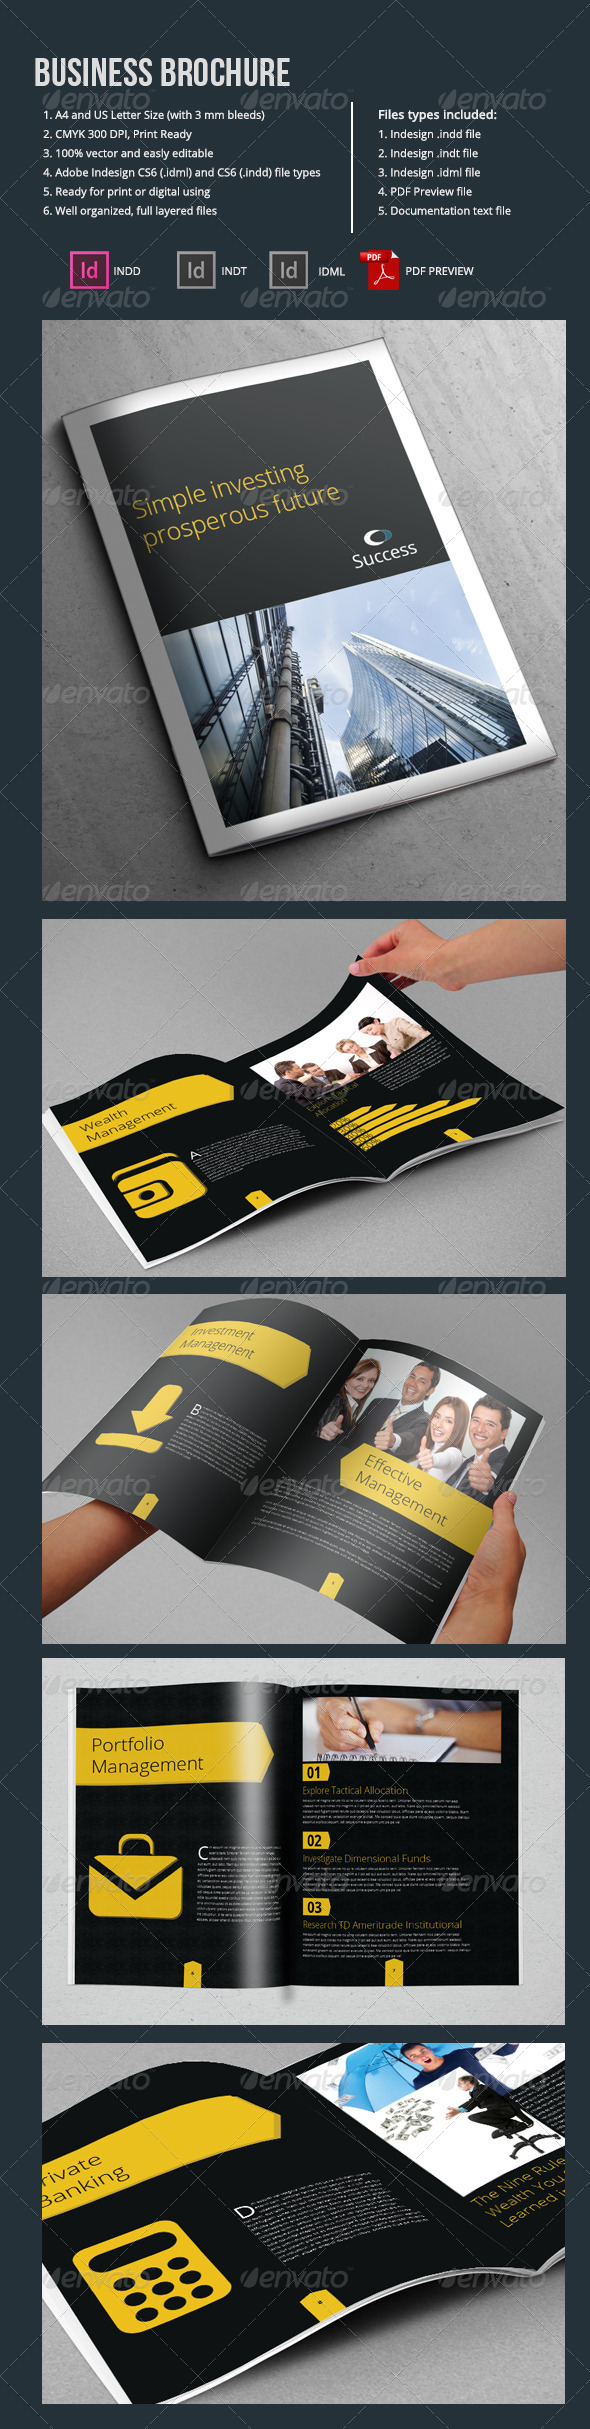 GraphicRiver A4 Business Brochure Template 10 Pages 6791489